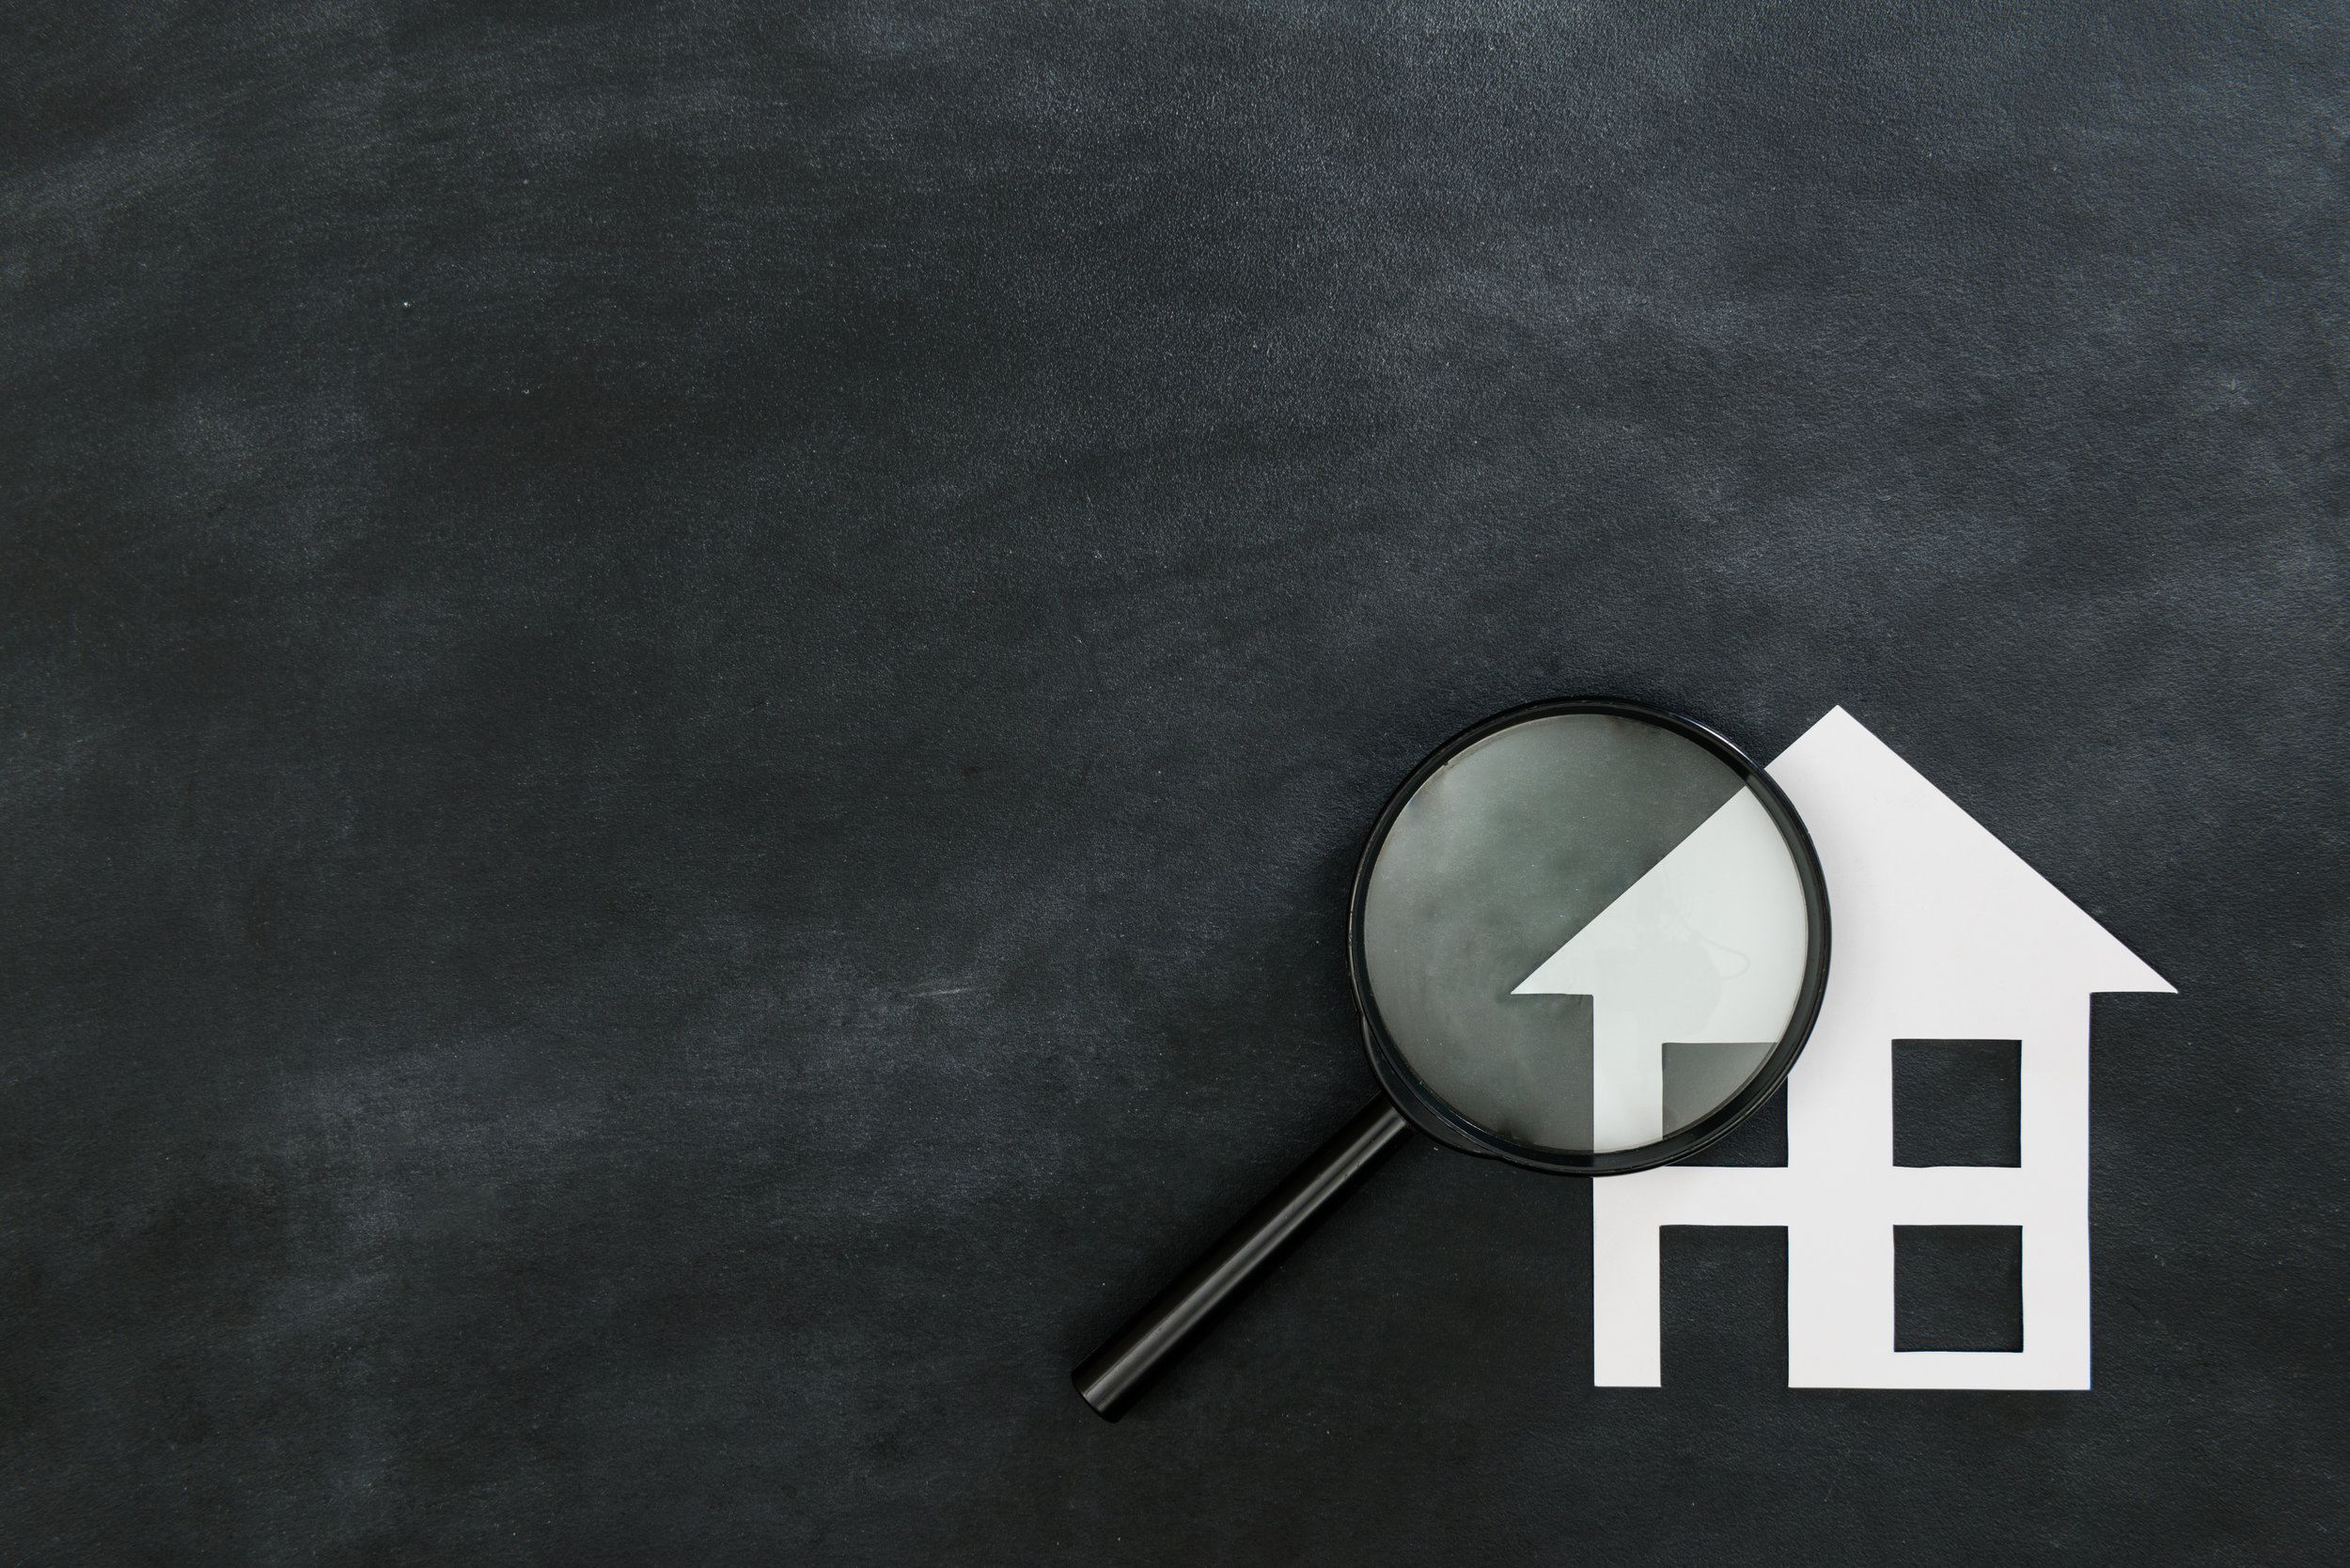 magnifier searching house isolated on chalkboard